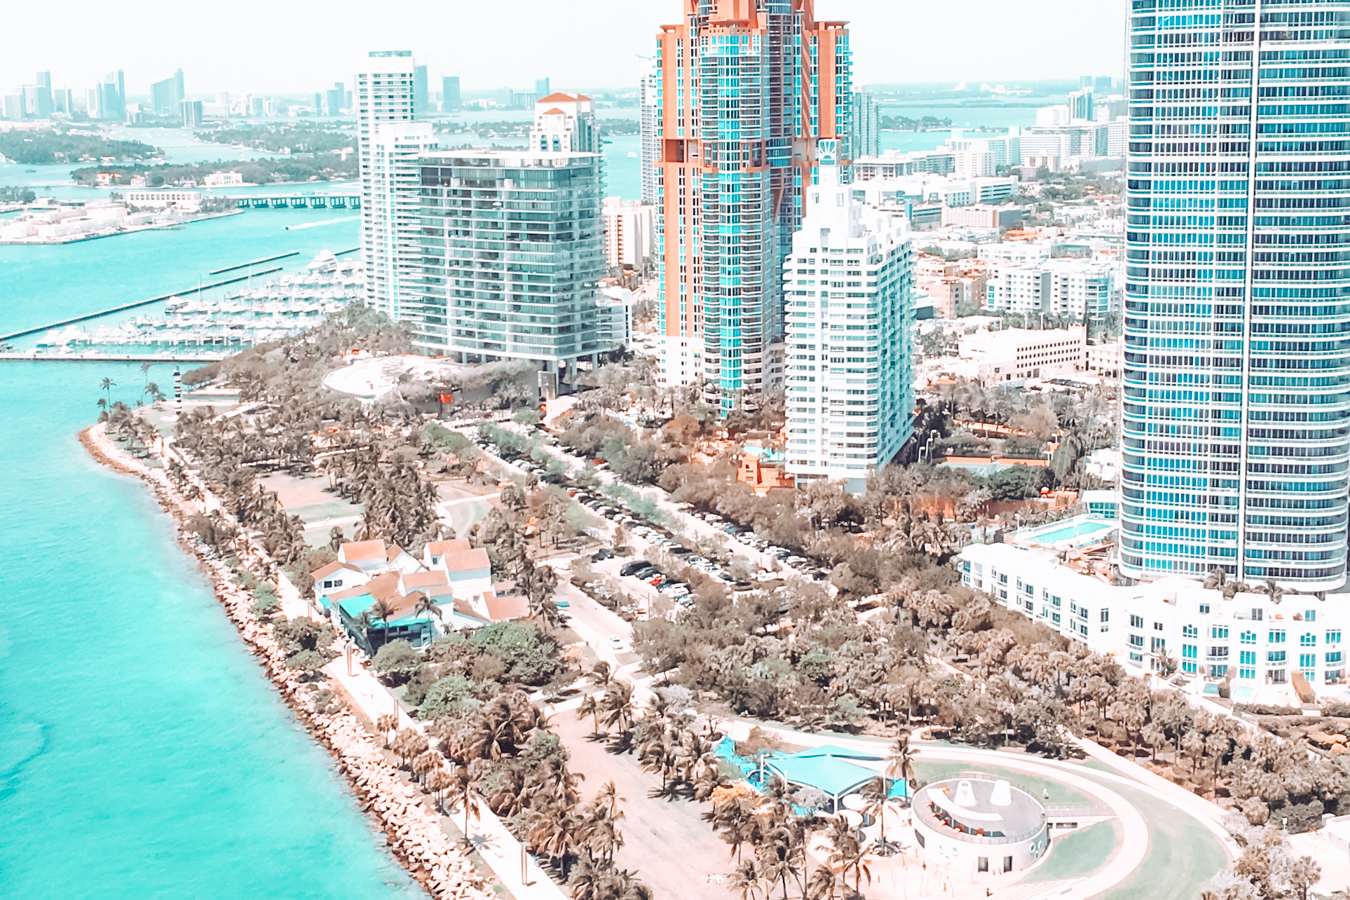 View of waterfront in Miami